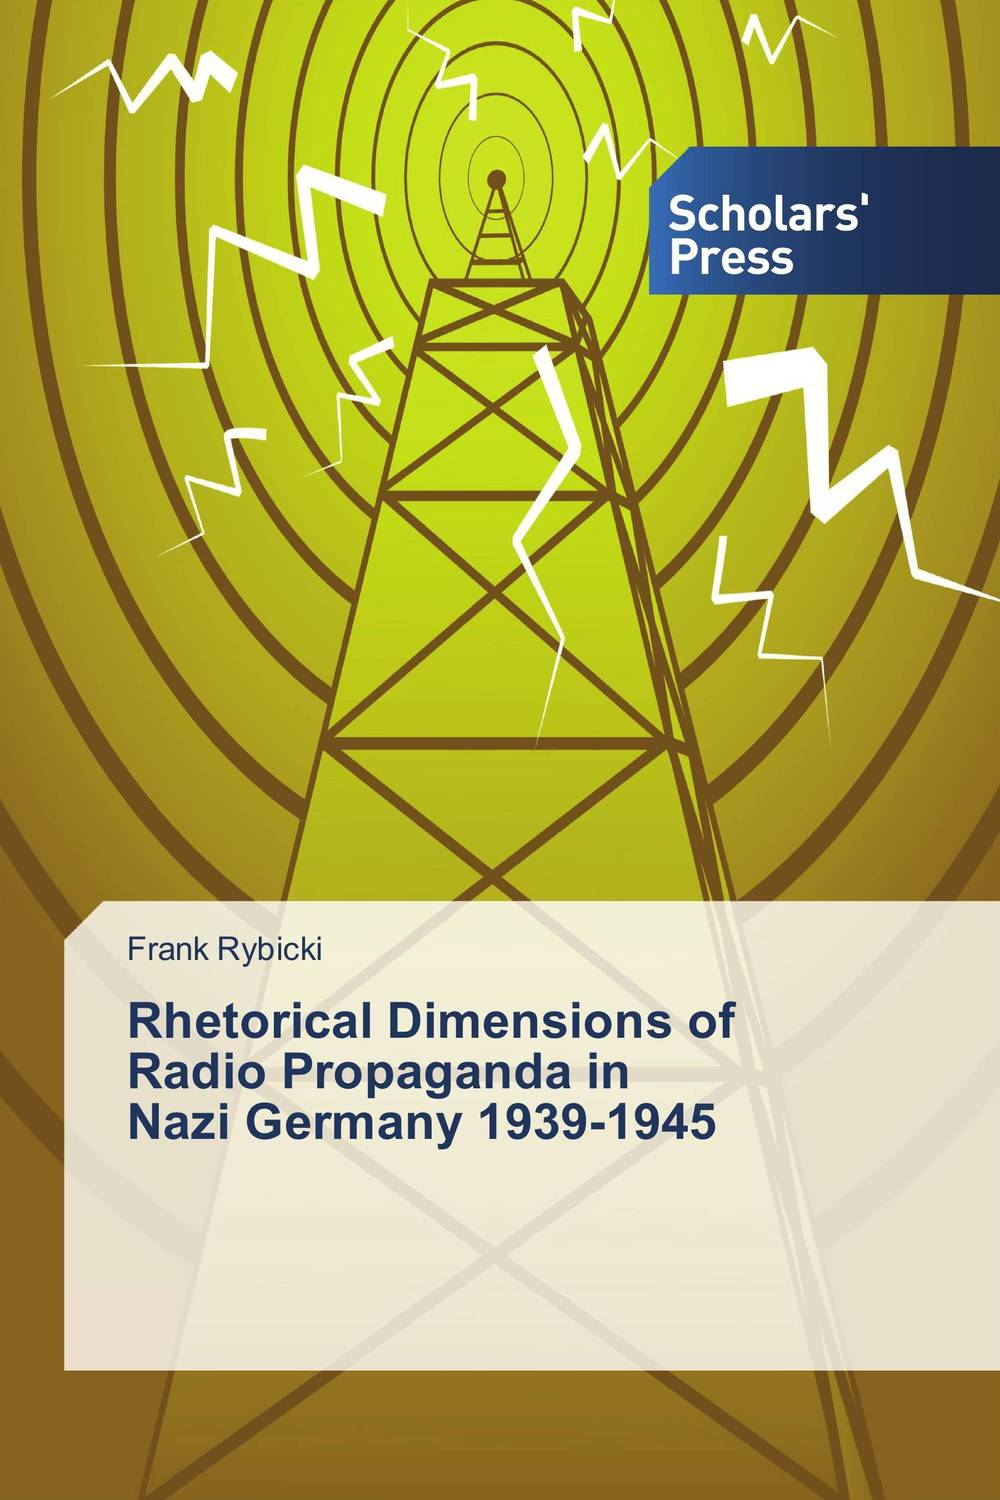 Rhetorical Dimensions of Radio Propaganda in Nazi Germany 1939-1945 guilt and defense – on the legacies of national socialism in postwar germany